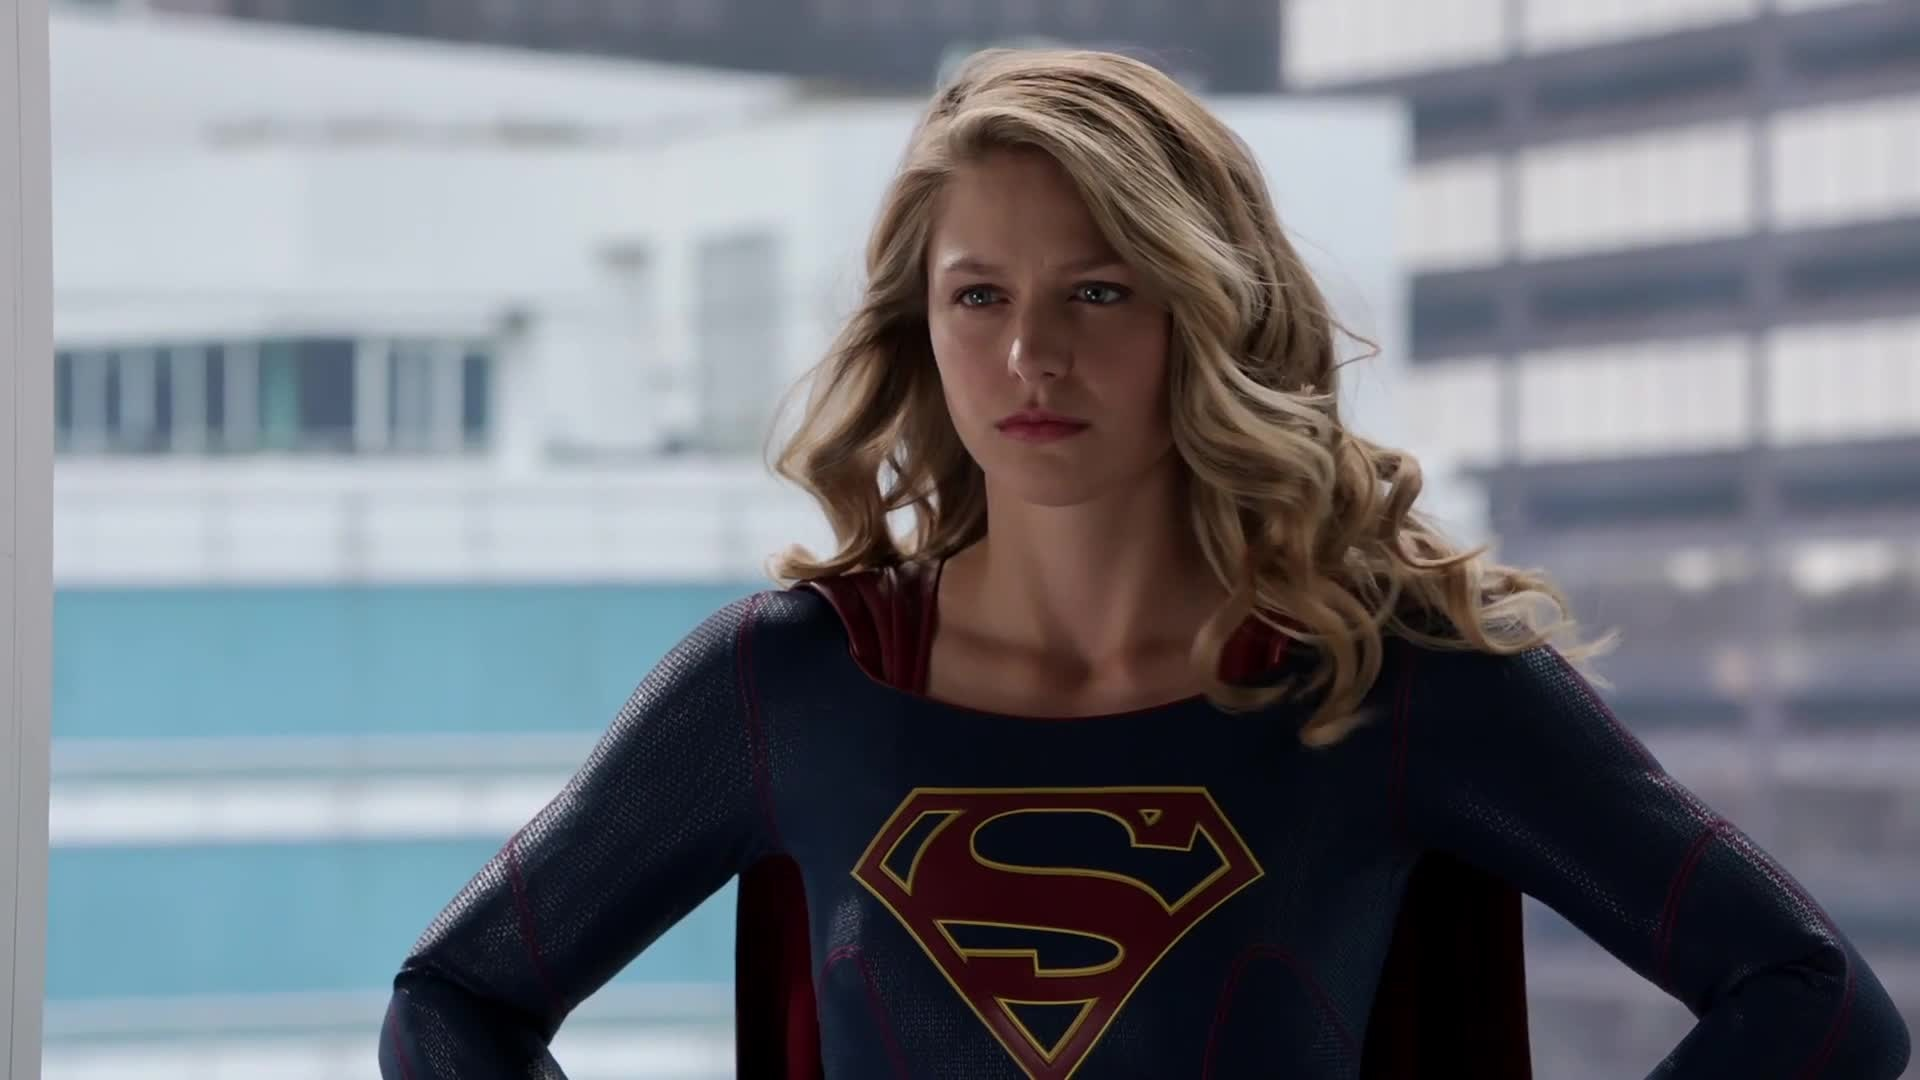 supergirl\u0027 is losing her life and purpose in season 3 Supergirl CBS Season 3